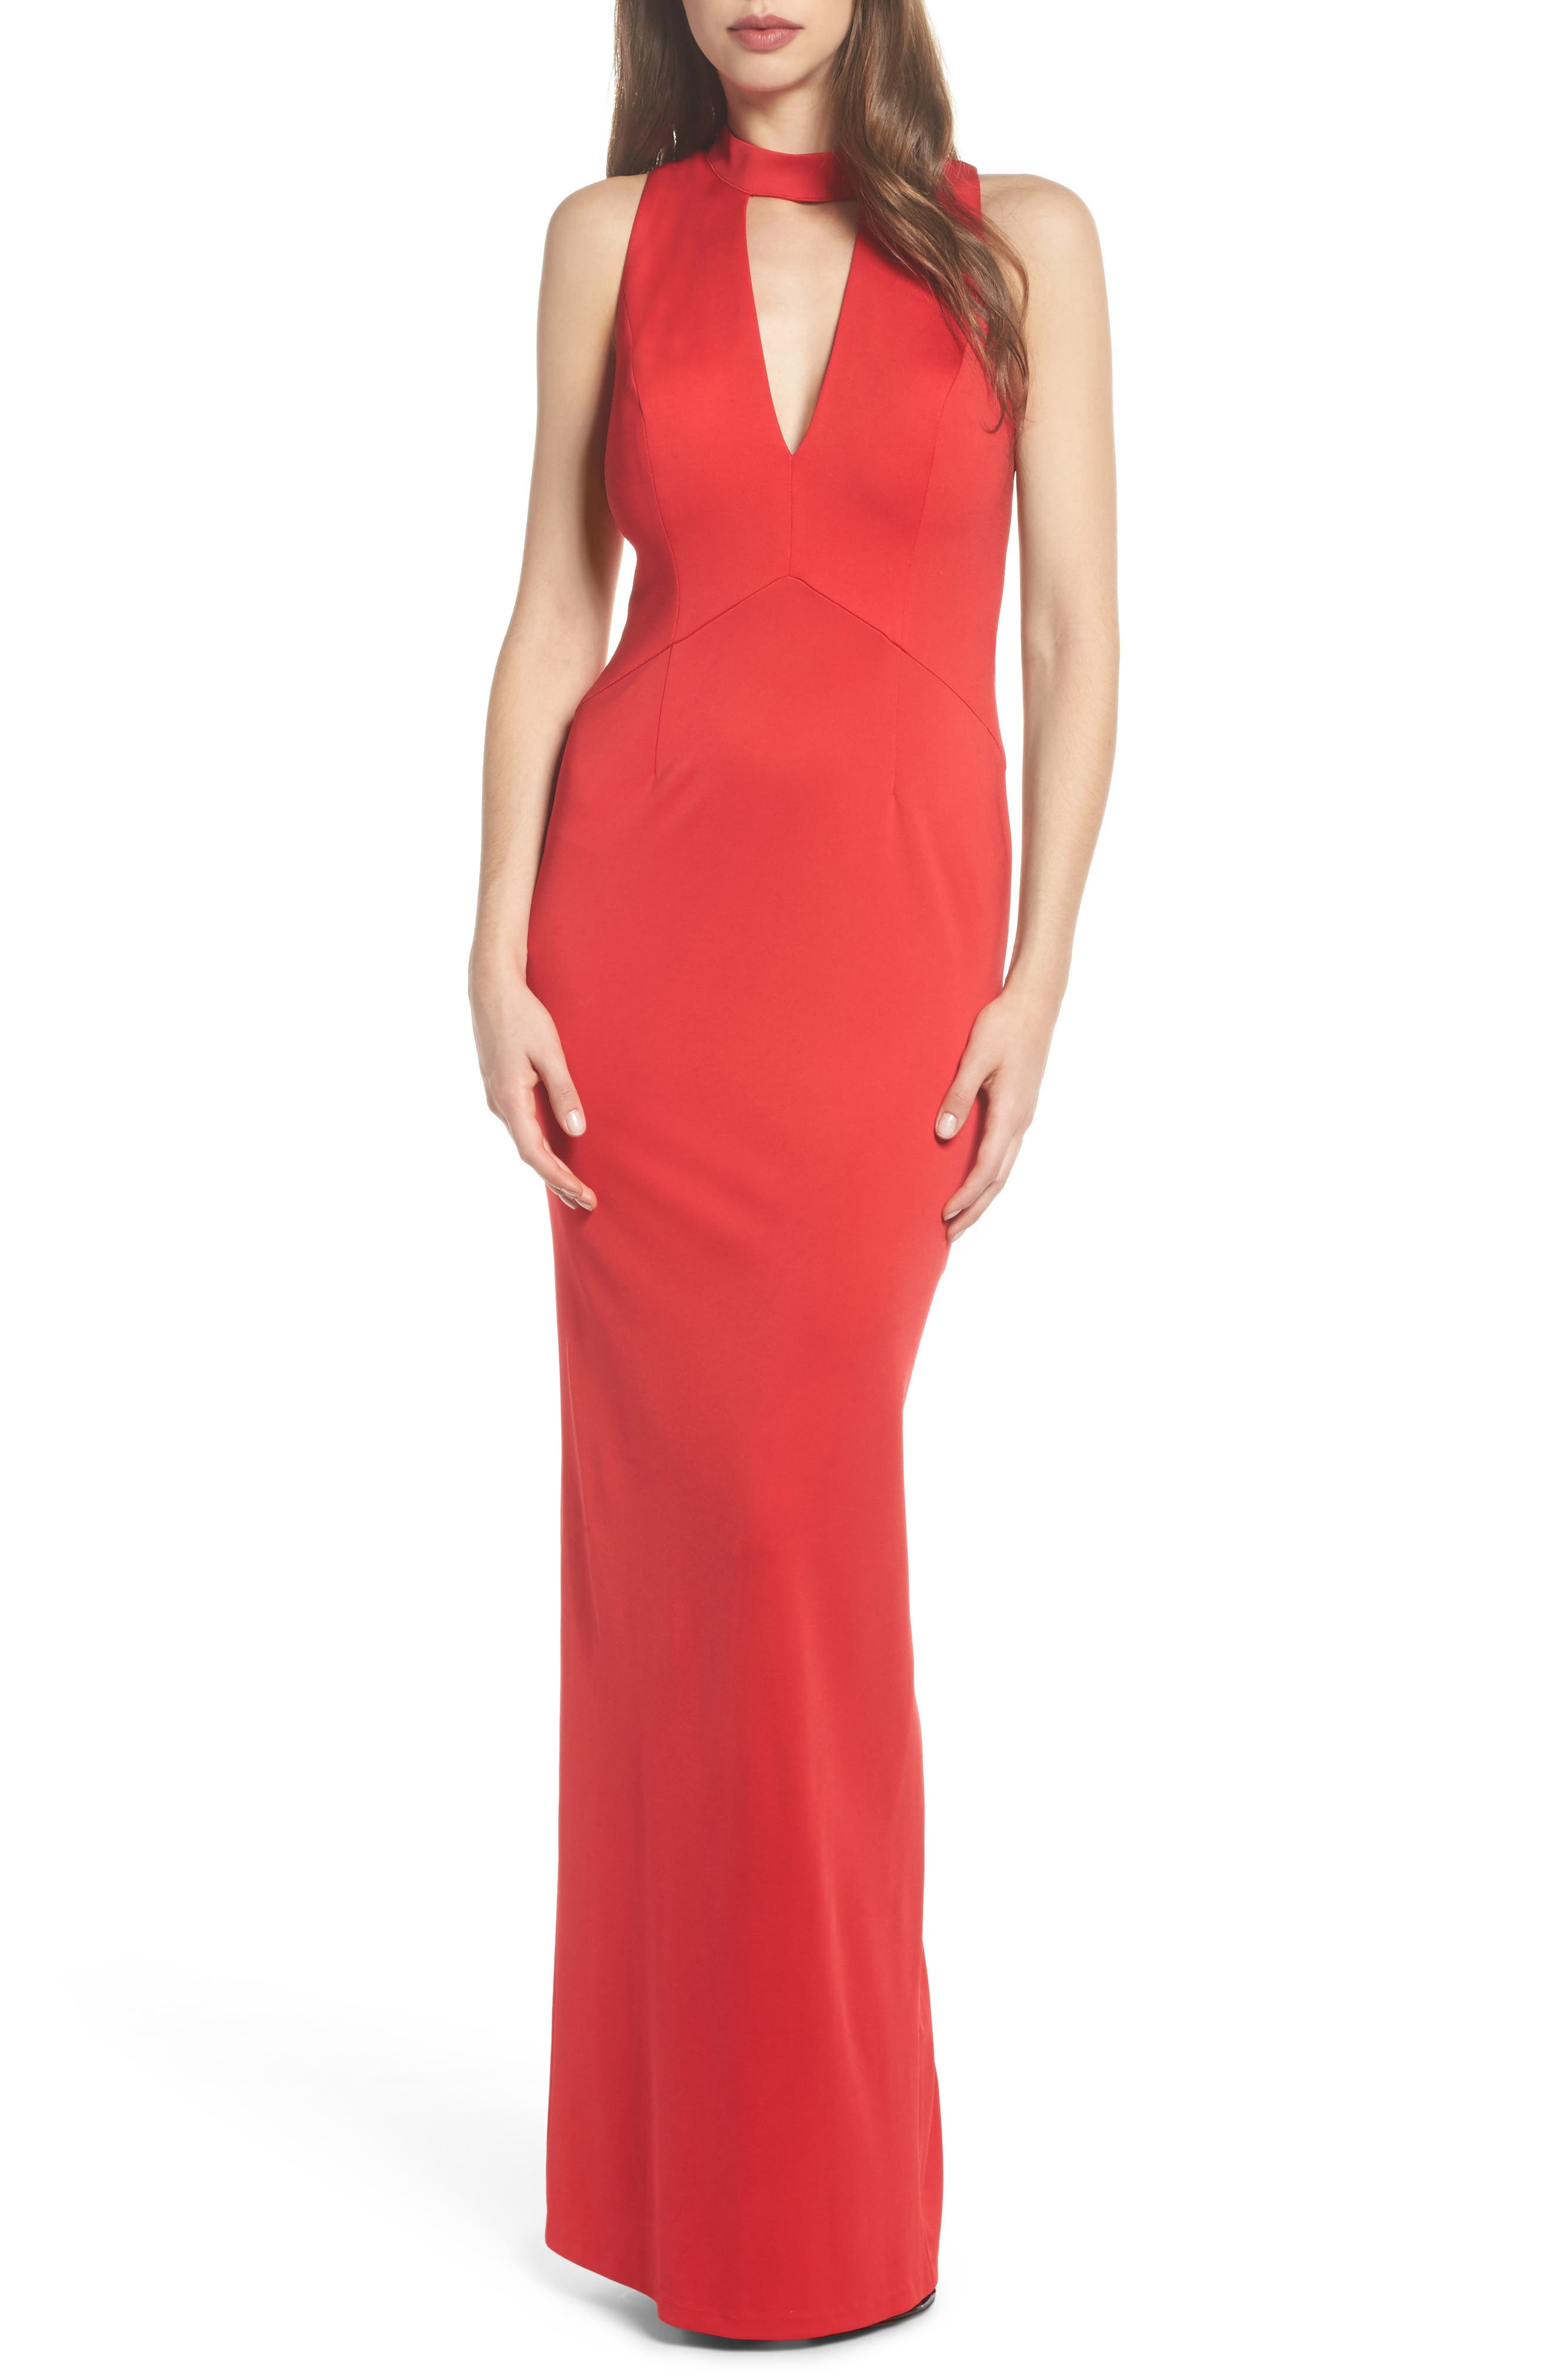 Alternate Image 1 Selected - Adrianna Papell Lola Corset Back Jersey Gown